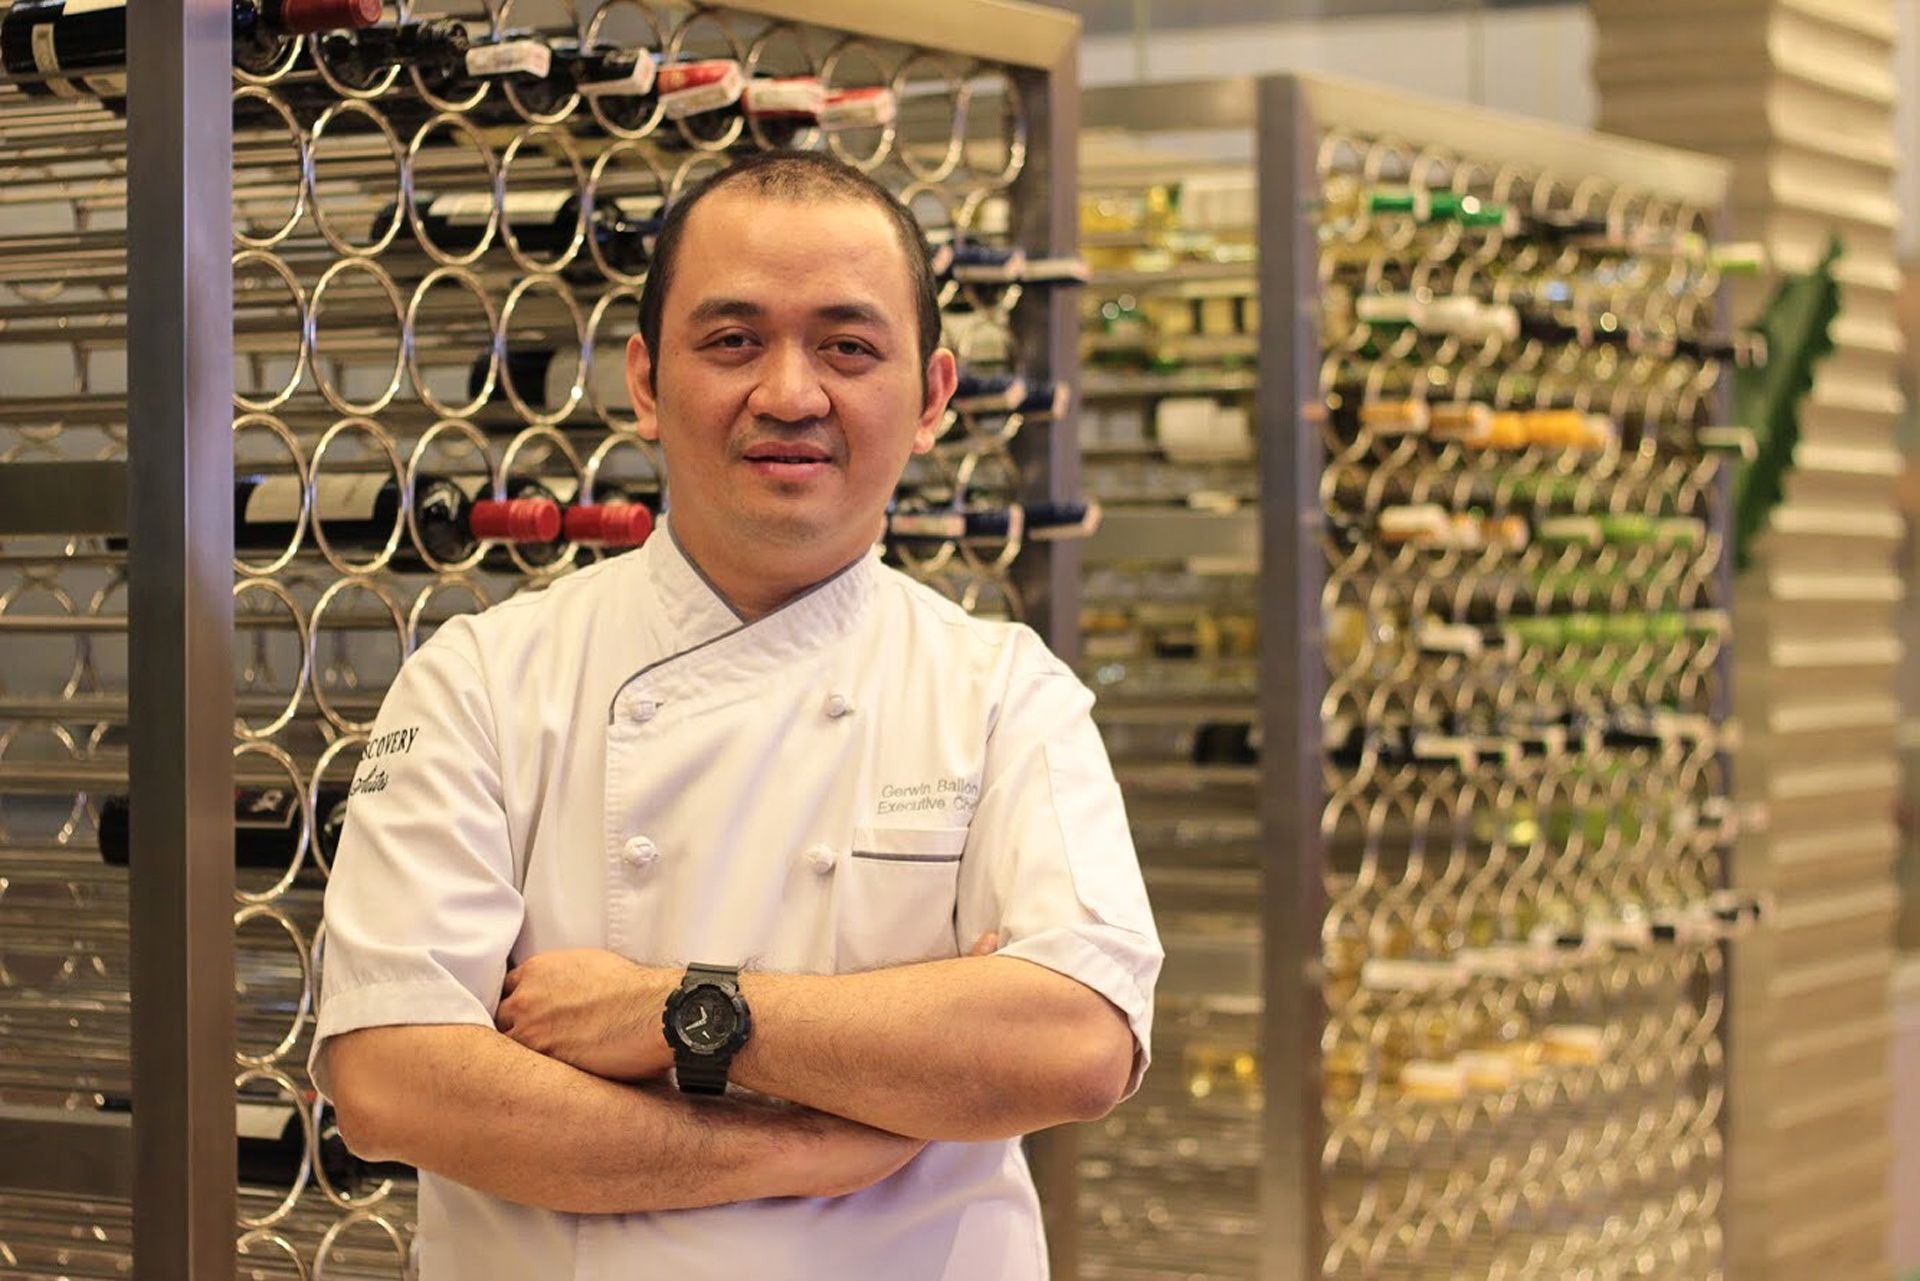 Meet The Chef: Gerwin Bailon